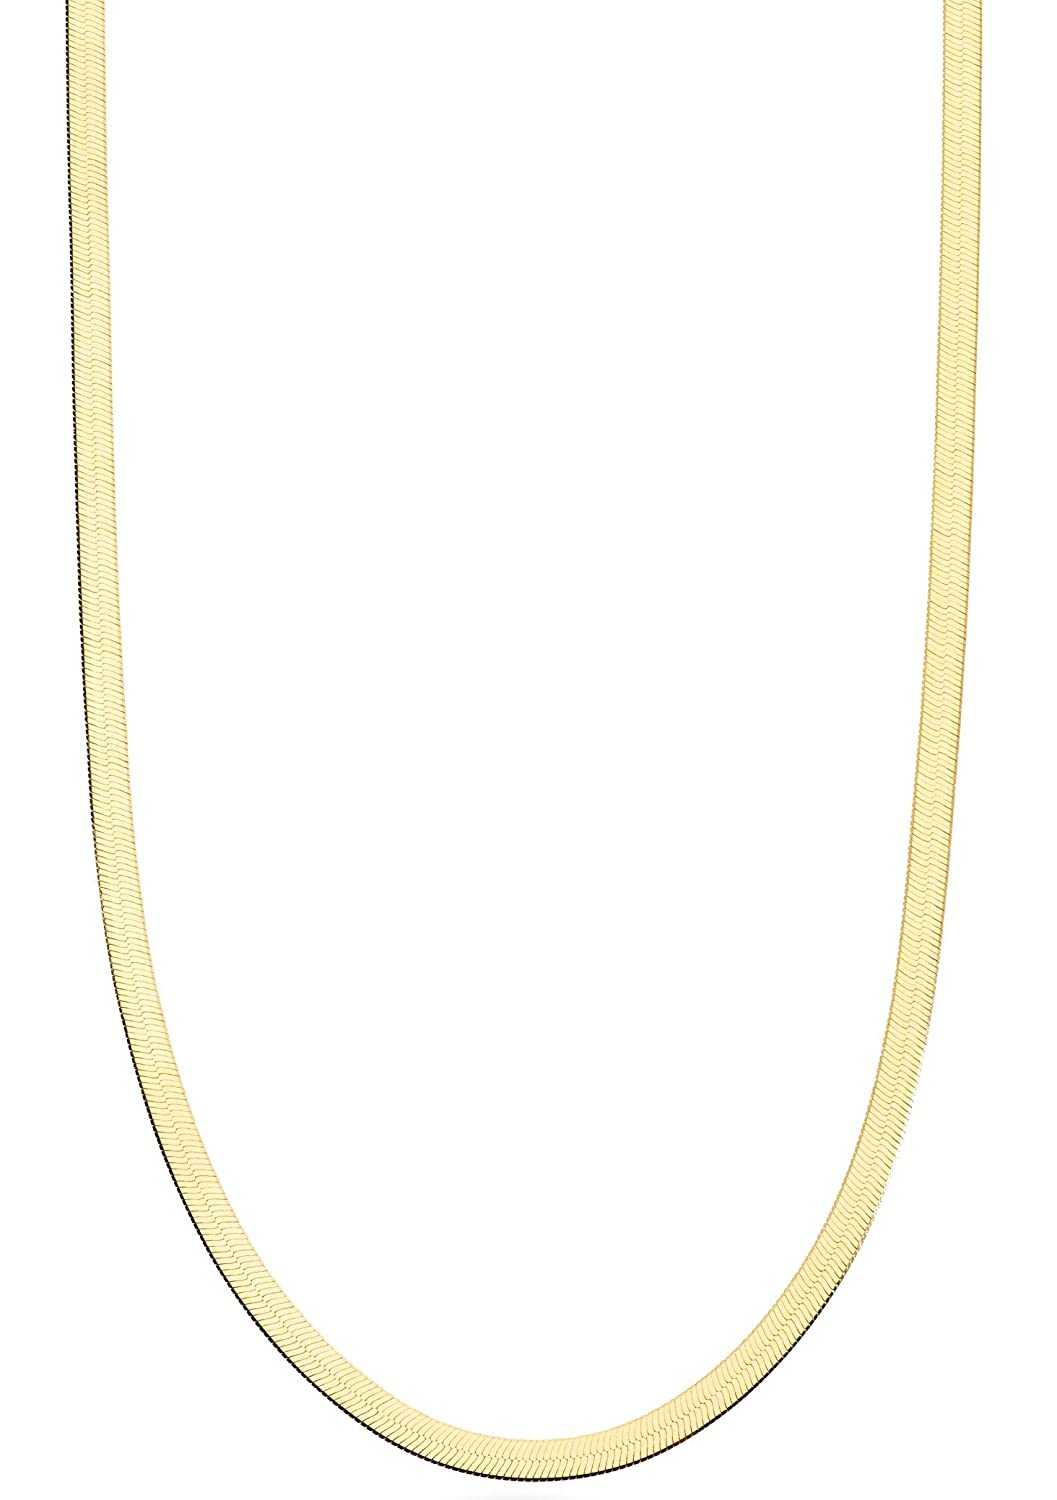 20 26 30 Inch Made in Italy 24 22 18 Miabella 18K Gold Over Sterling Silver Italian Solid 3.5mm Flexible Flat Herringbone Chain Necklace for Women Men 16